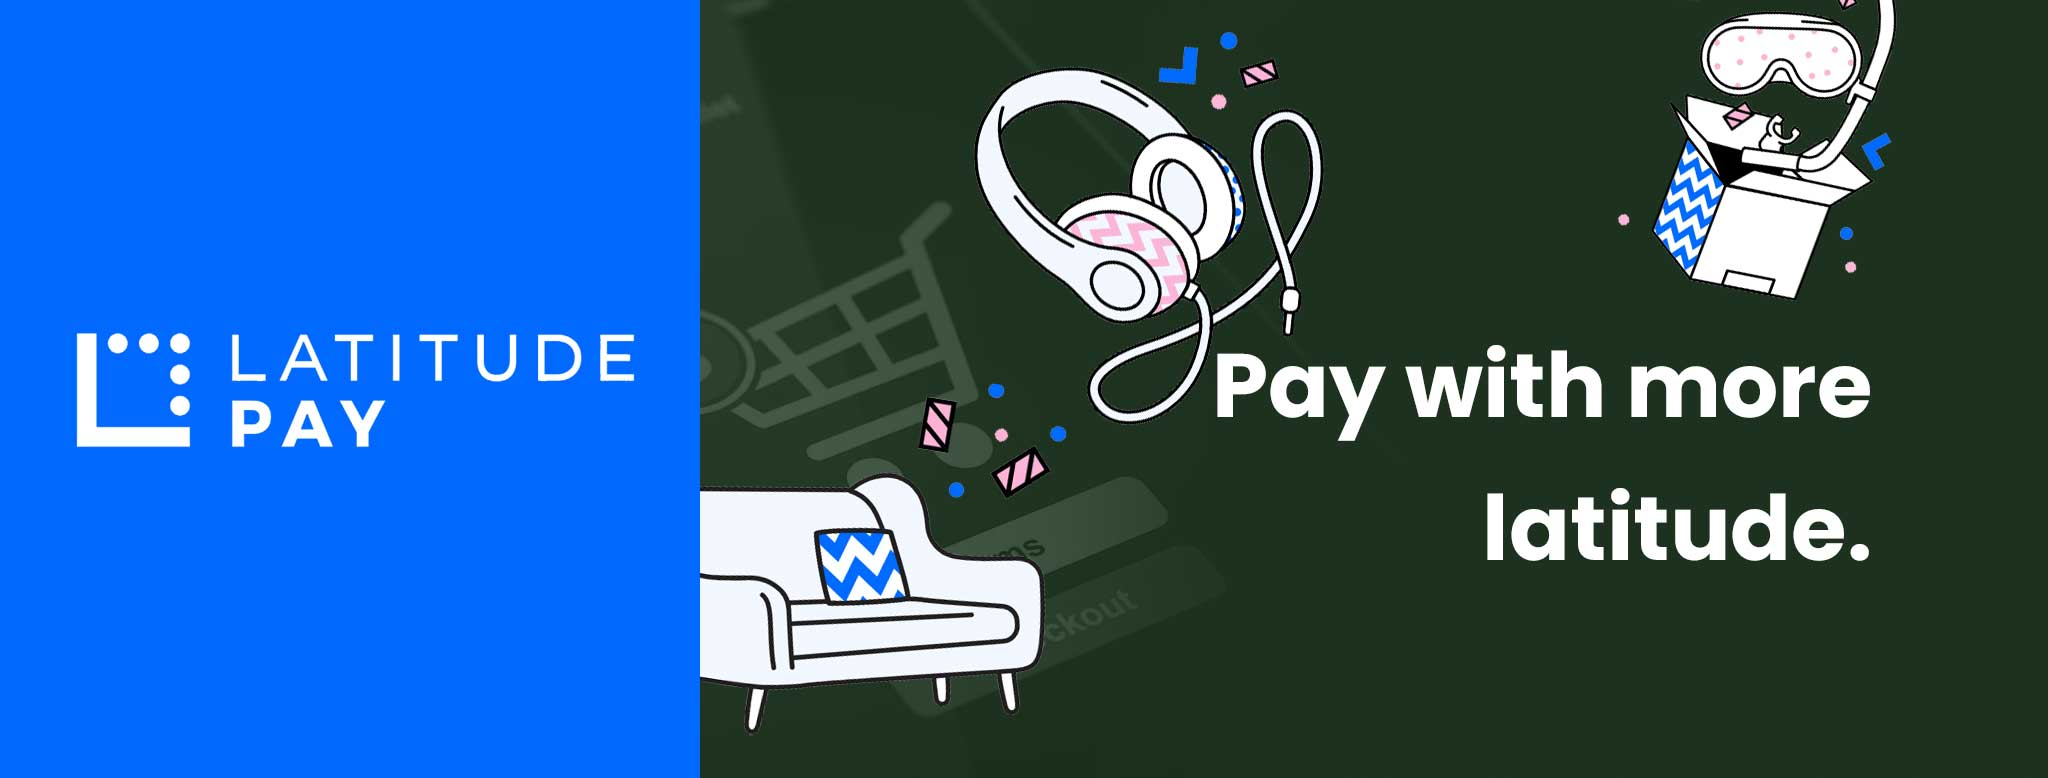 Pay later with LatitudePay